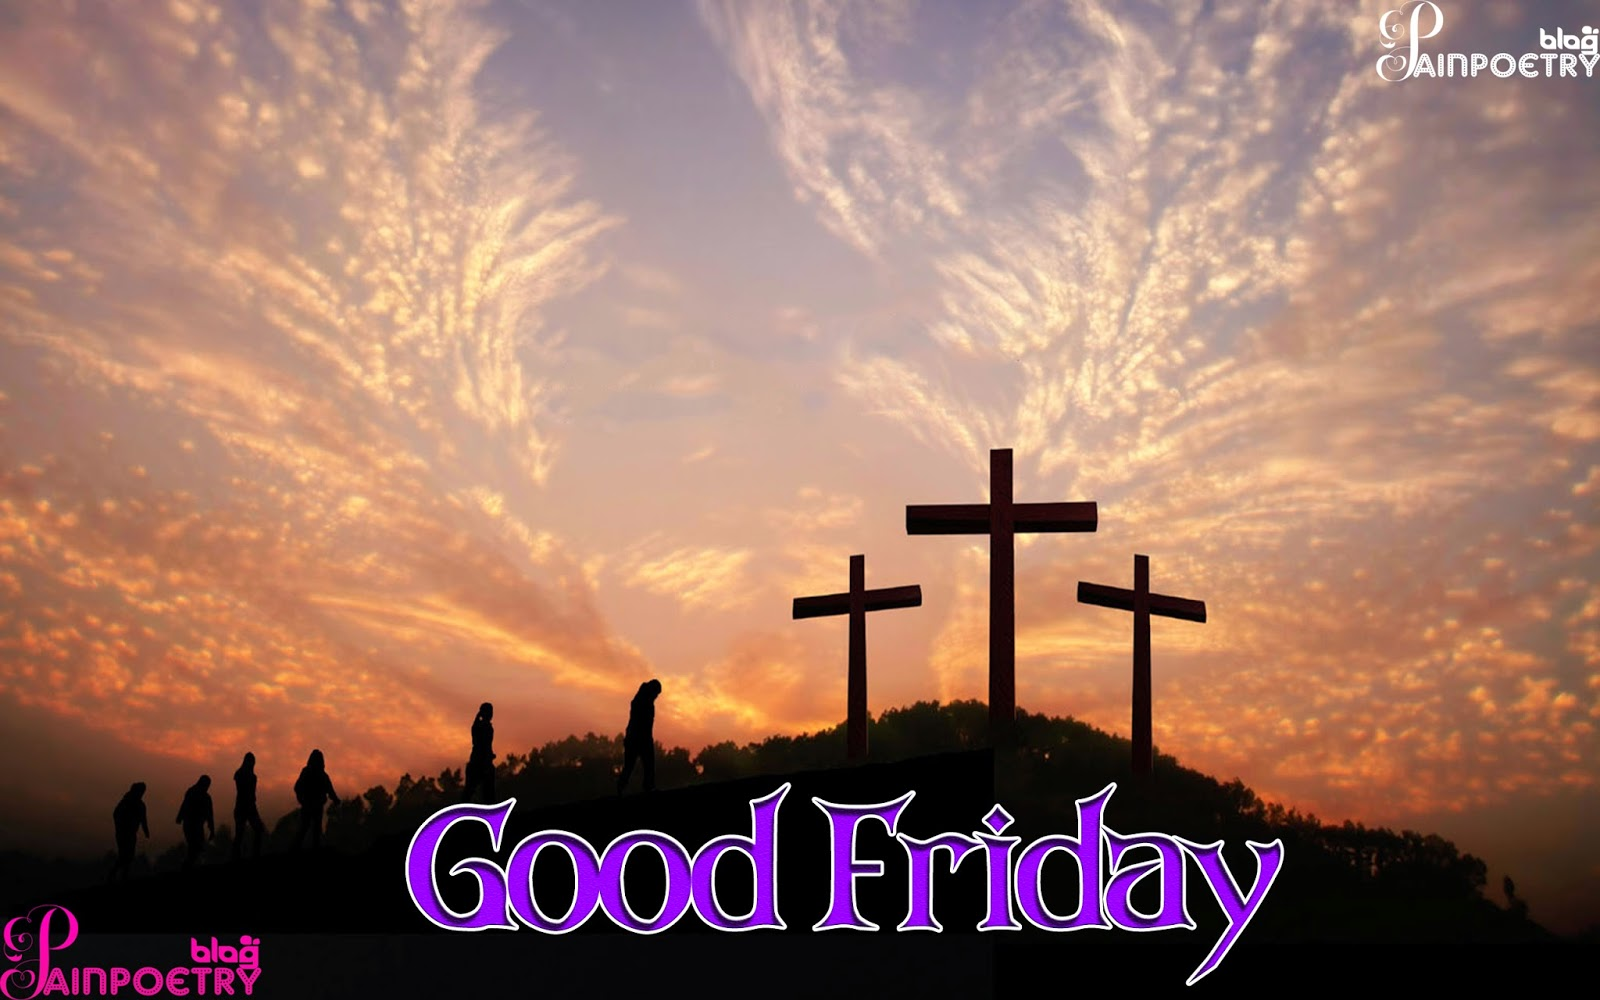 Good-Friday-Image-Good-Friday-Three-Cross-Image-&-Good-Friday-Writing-HD-Wide